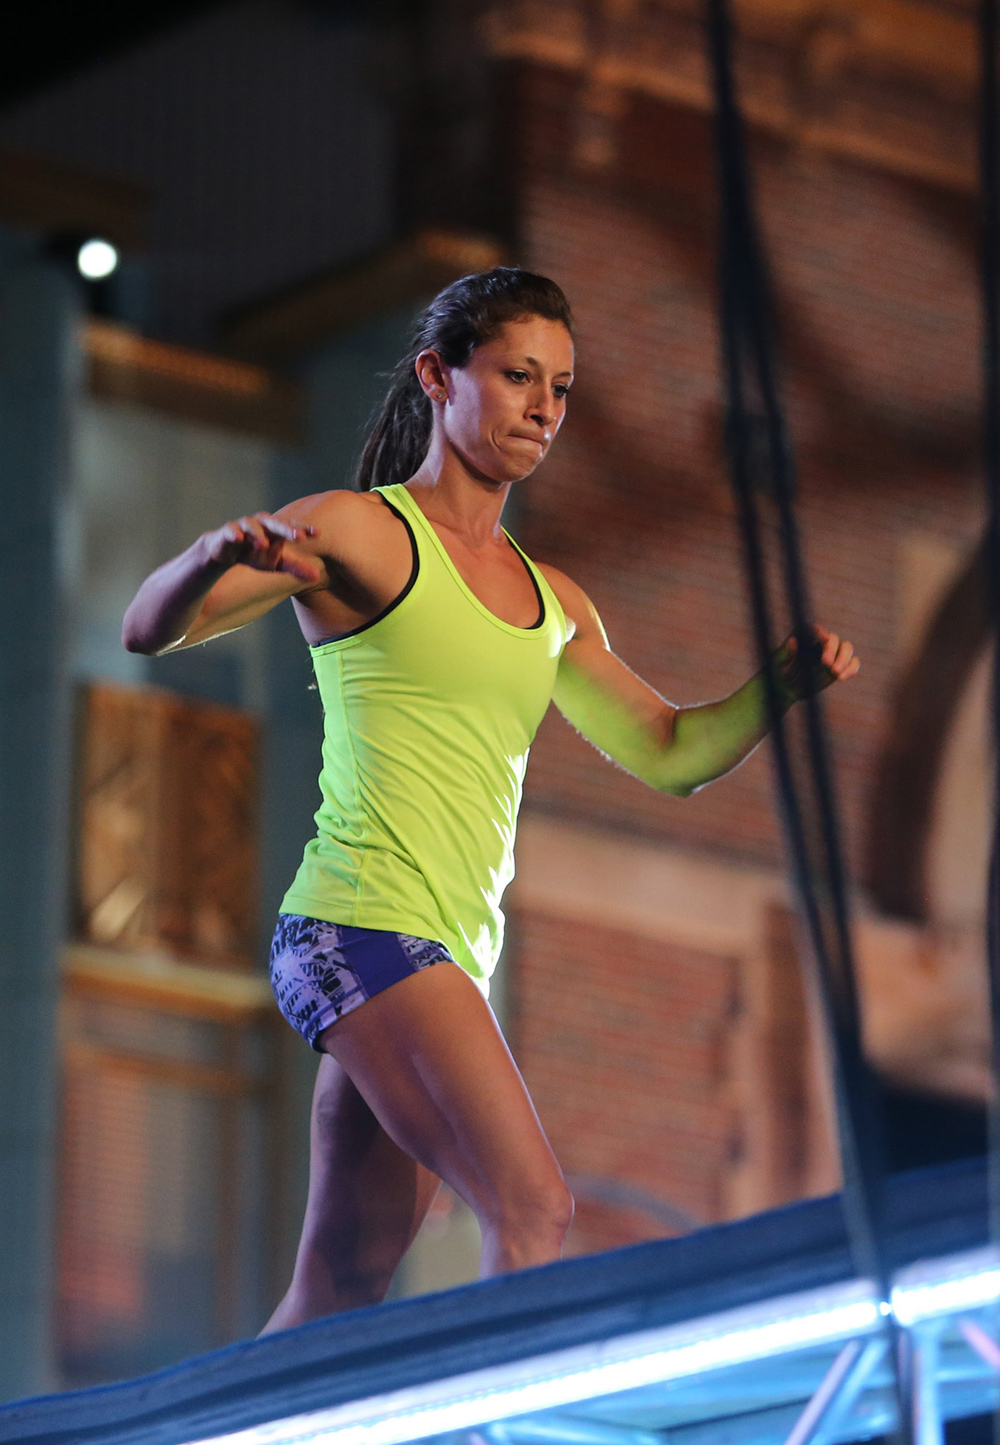 Karly Streisfeld MA '05 balances atop the American Ninja Warrior obstacle course